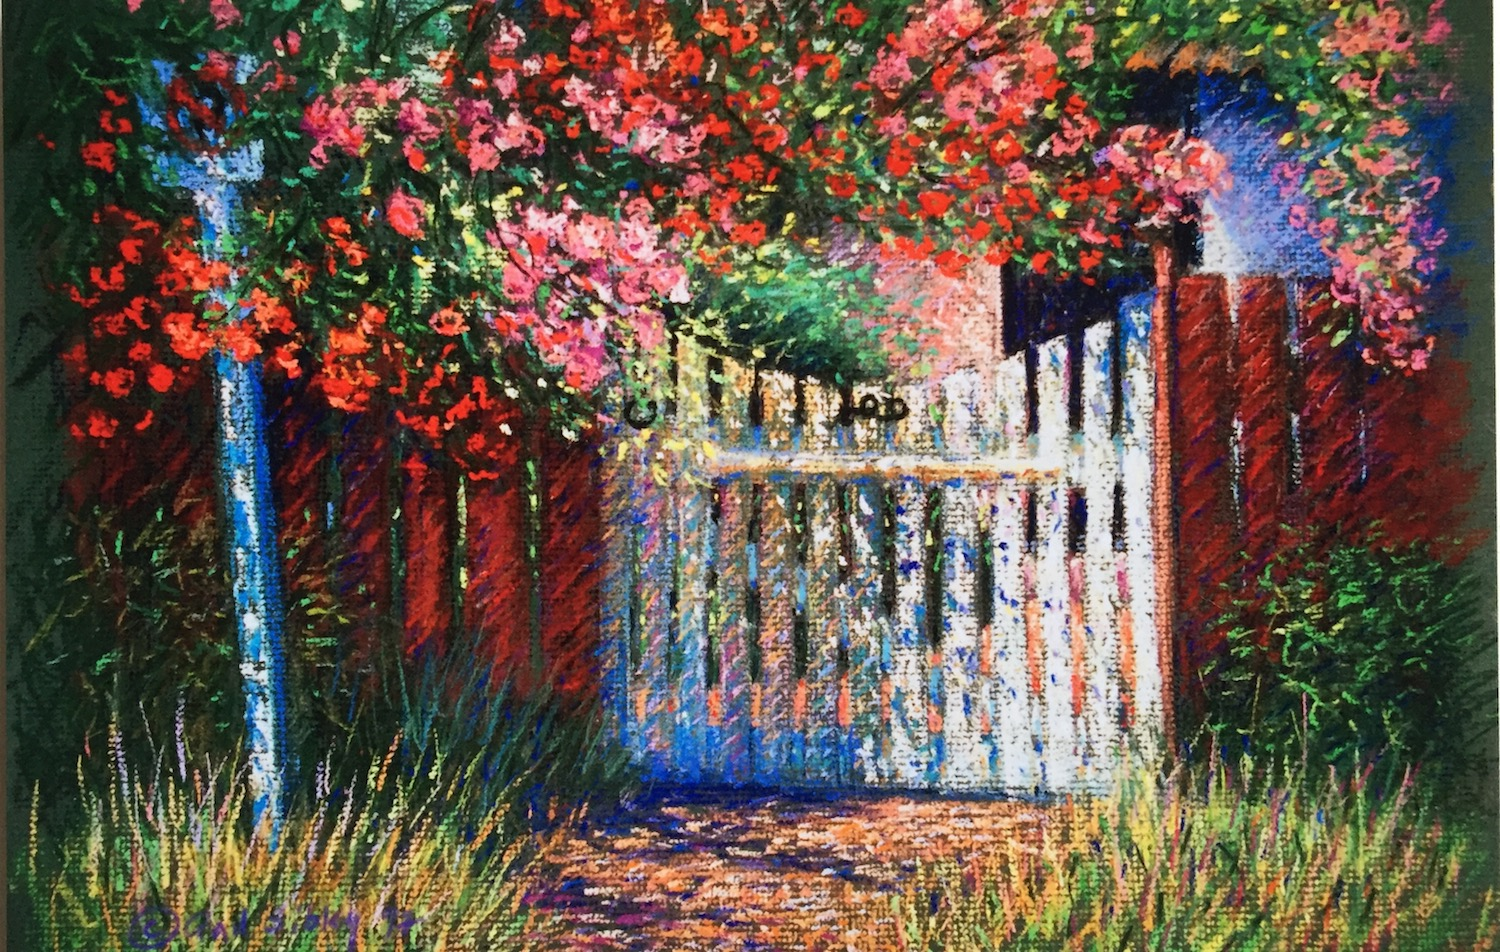 """Finding Your Style: Gail Sibley, """"Garden Gate,"""" c. 1996, pastel on mat board, approx 16 x 20 in"""